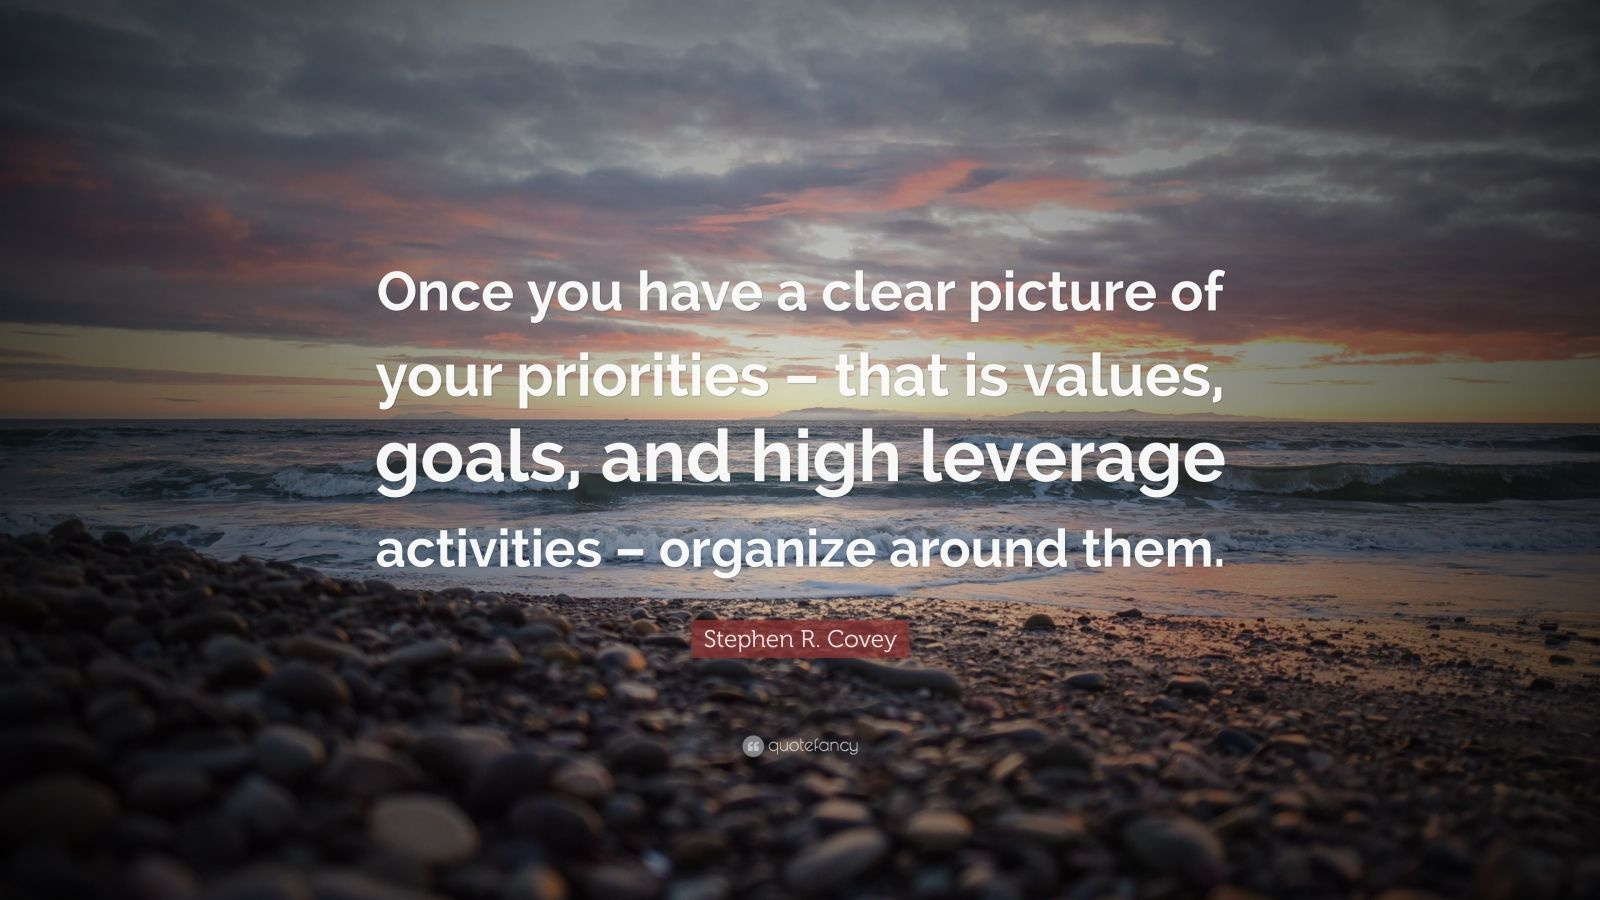 Stephen R Covey Quote Once You Have A Clear Picture Of